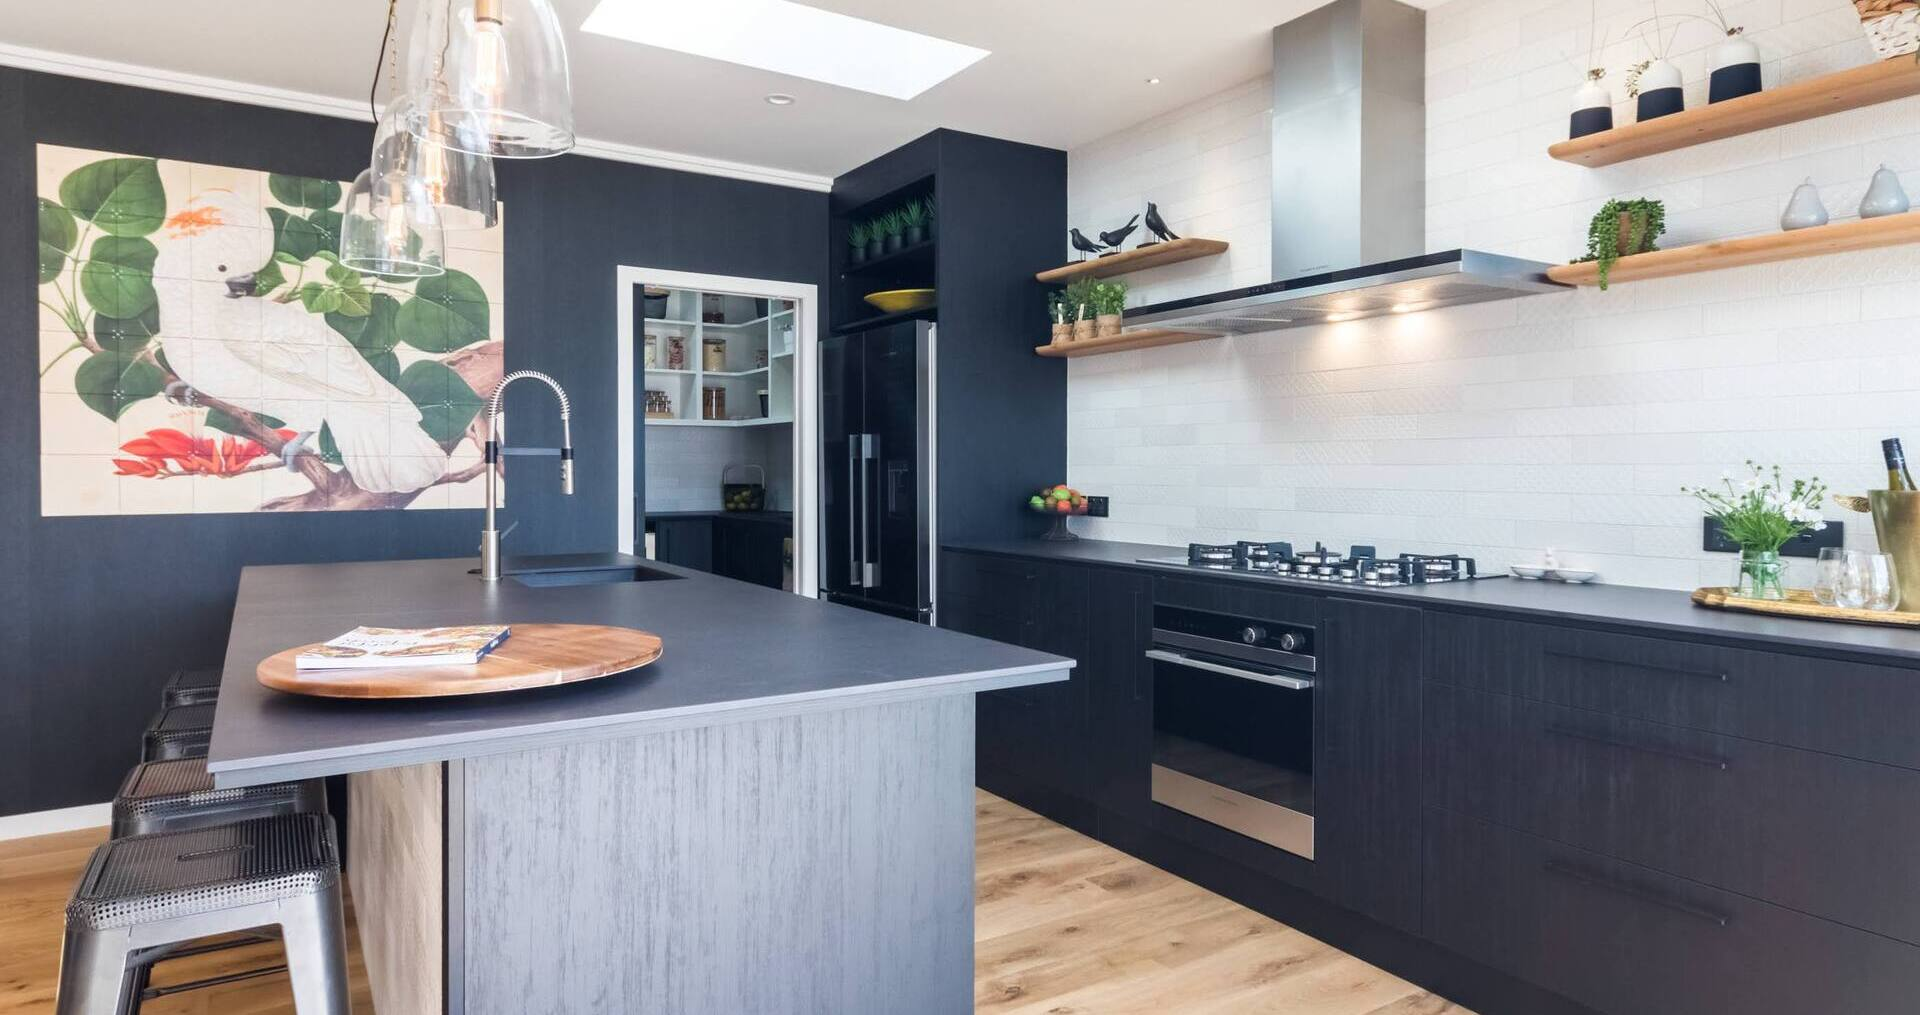 5 important things to consider before building your own home